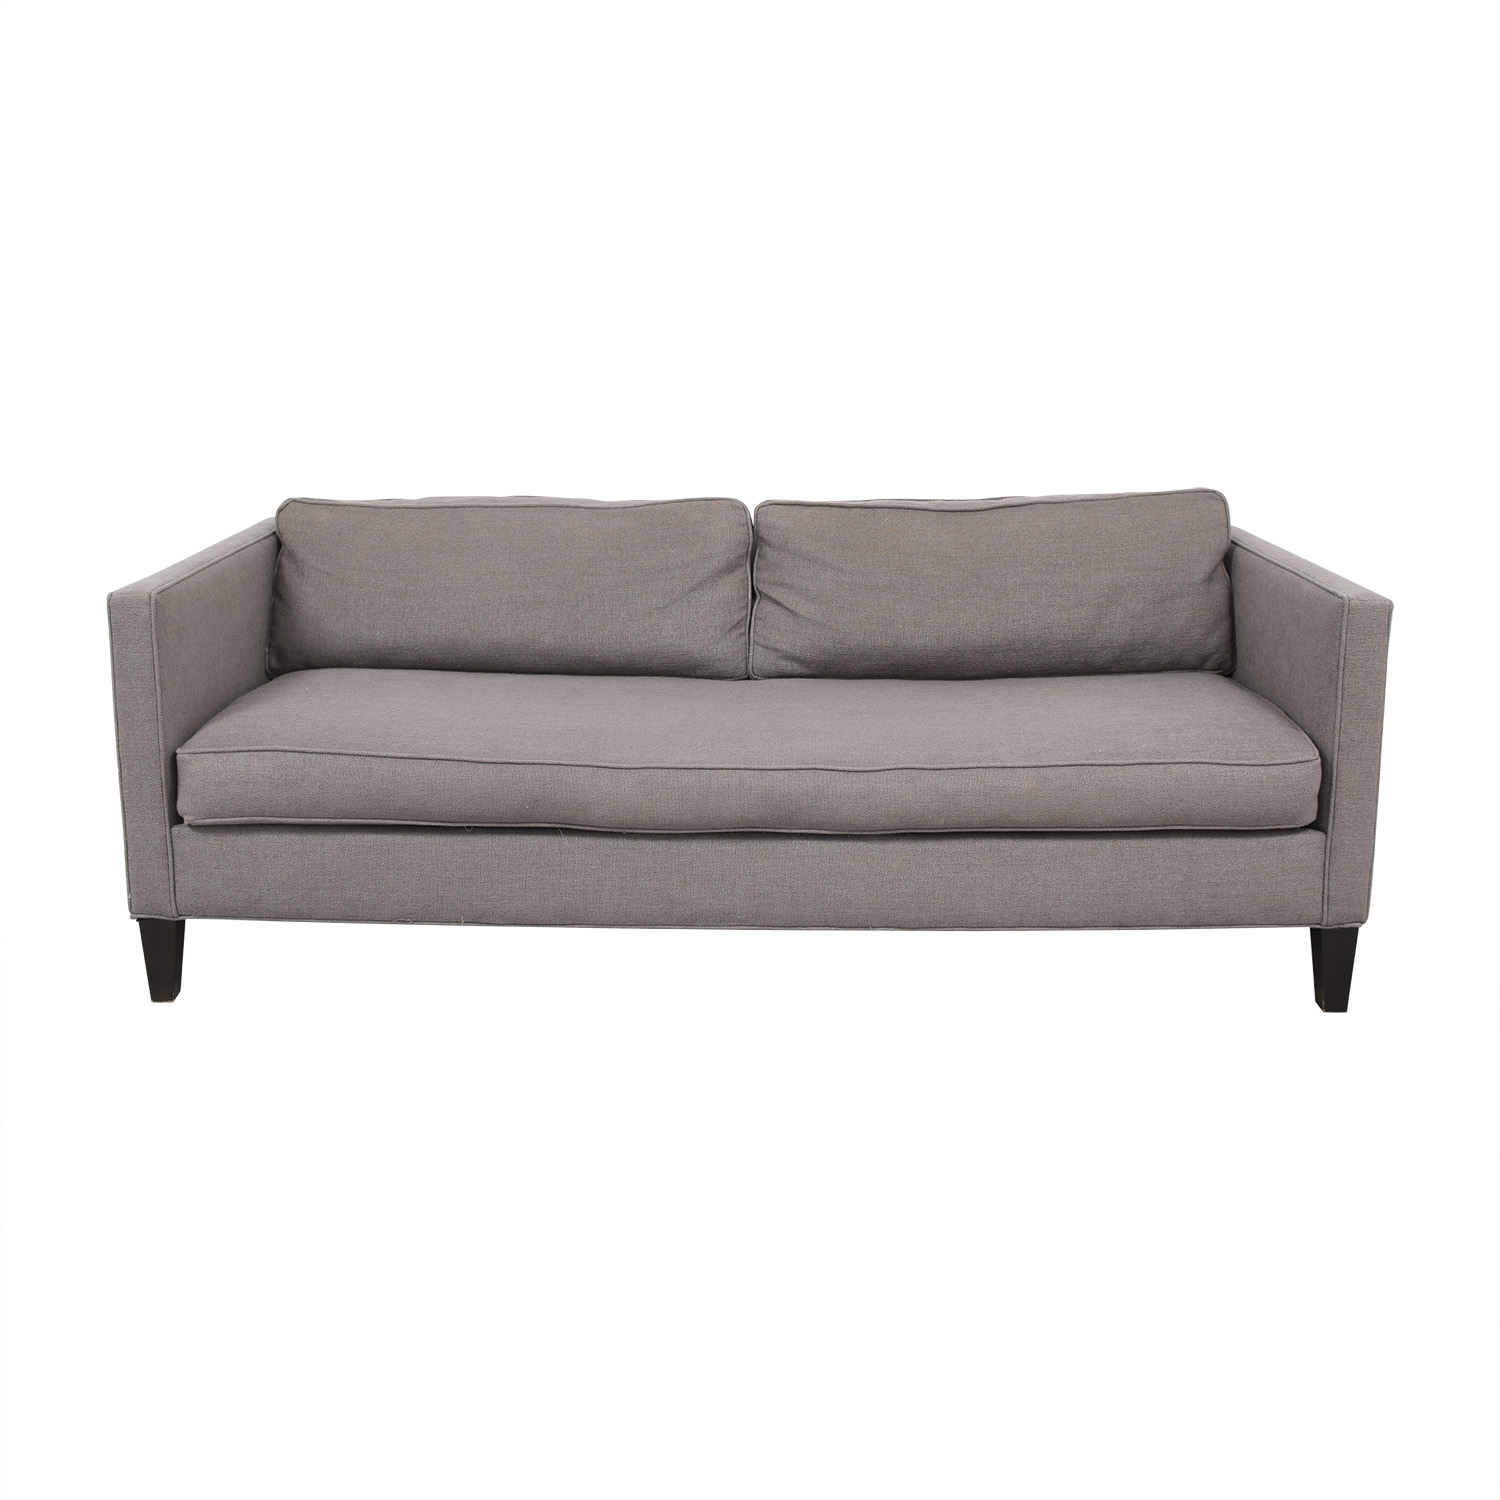 West Elm West Elm Dunham Sofa price